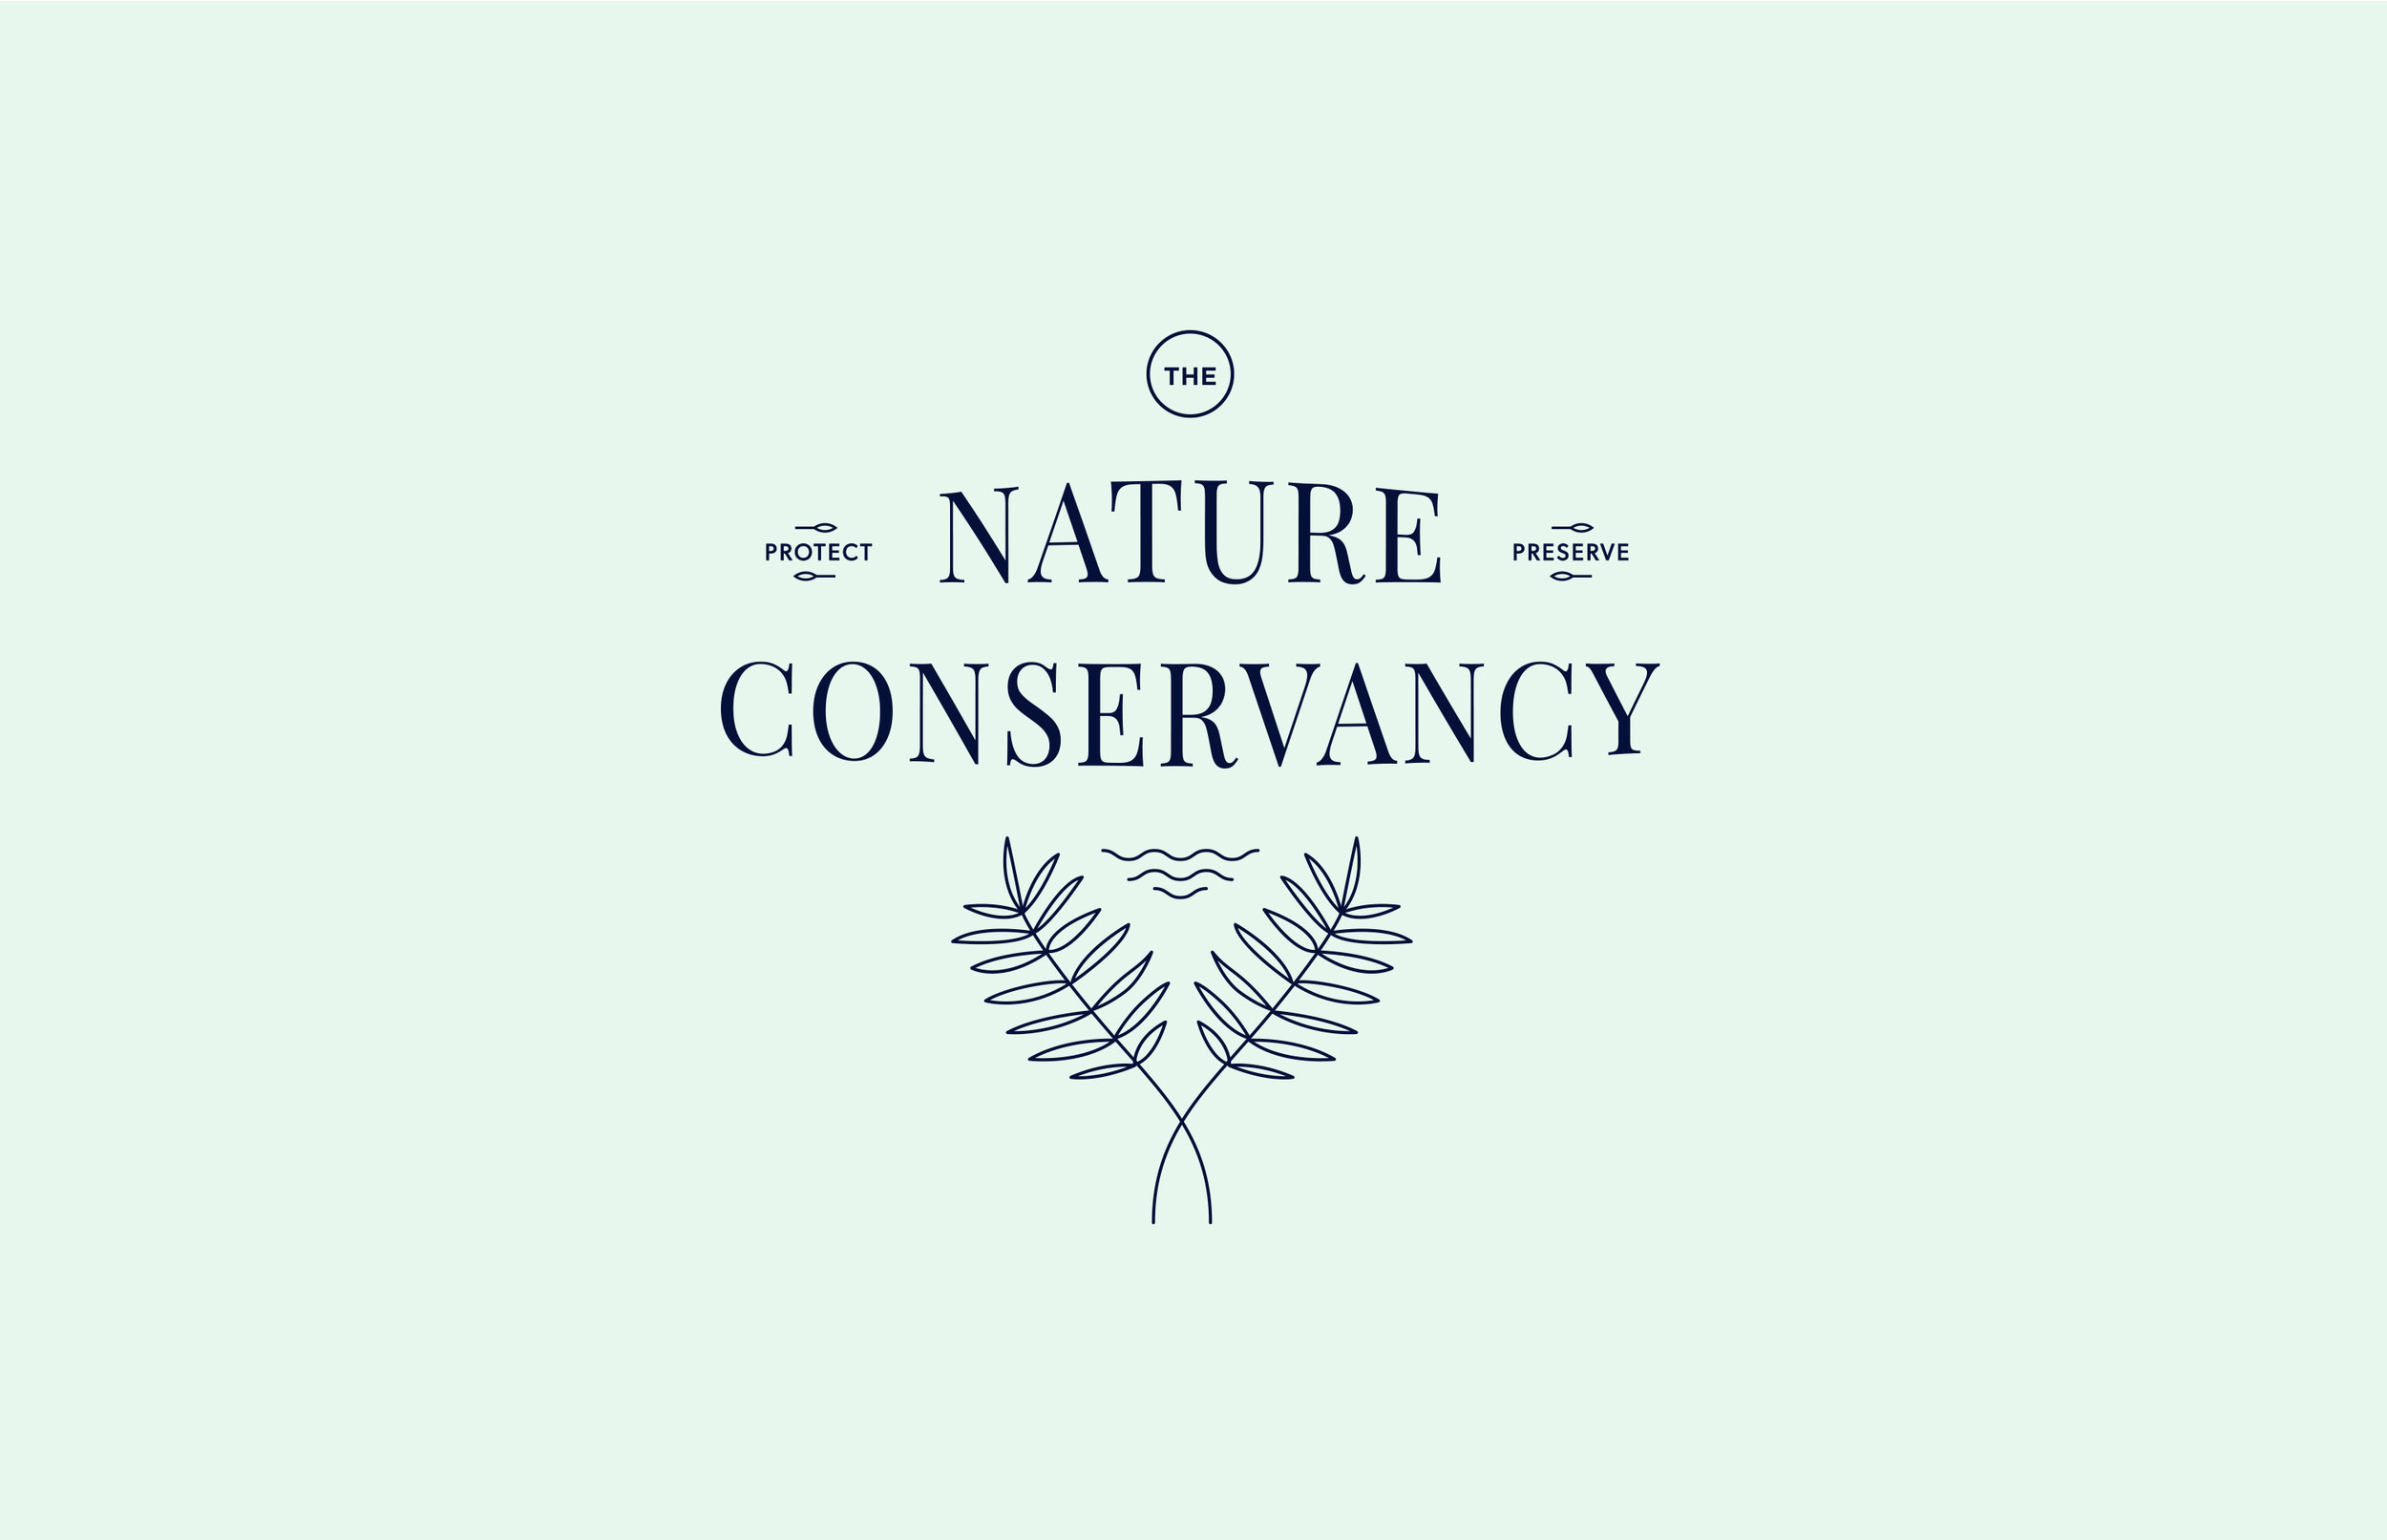 CG-CargoRefresh-Logos-Nature.jpg